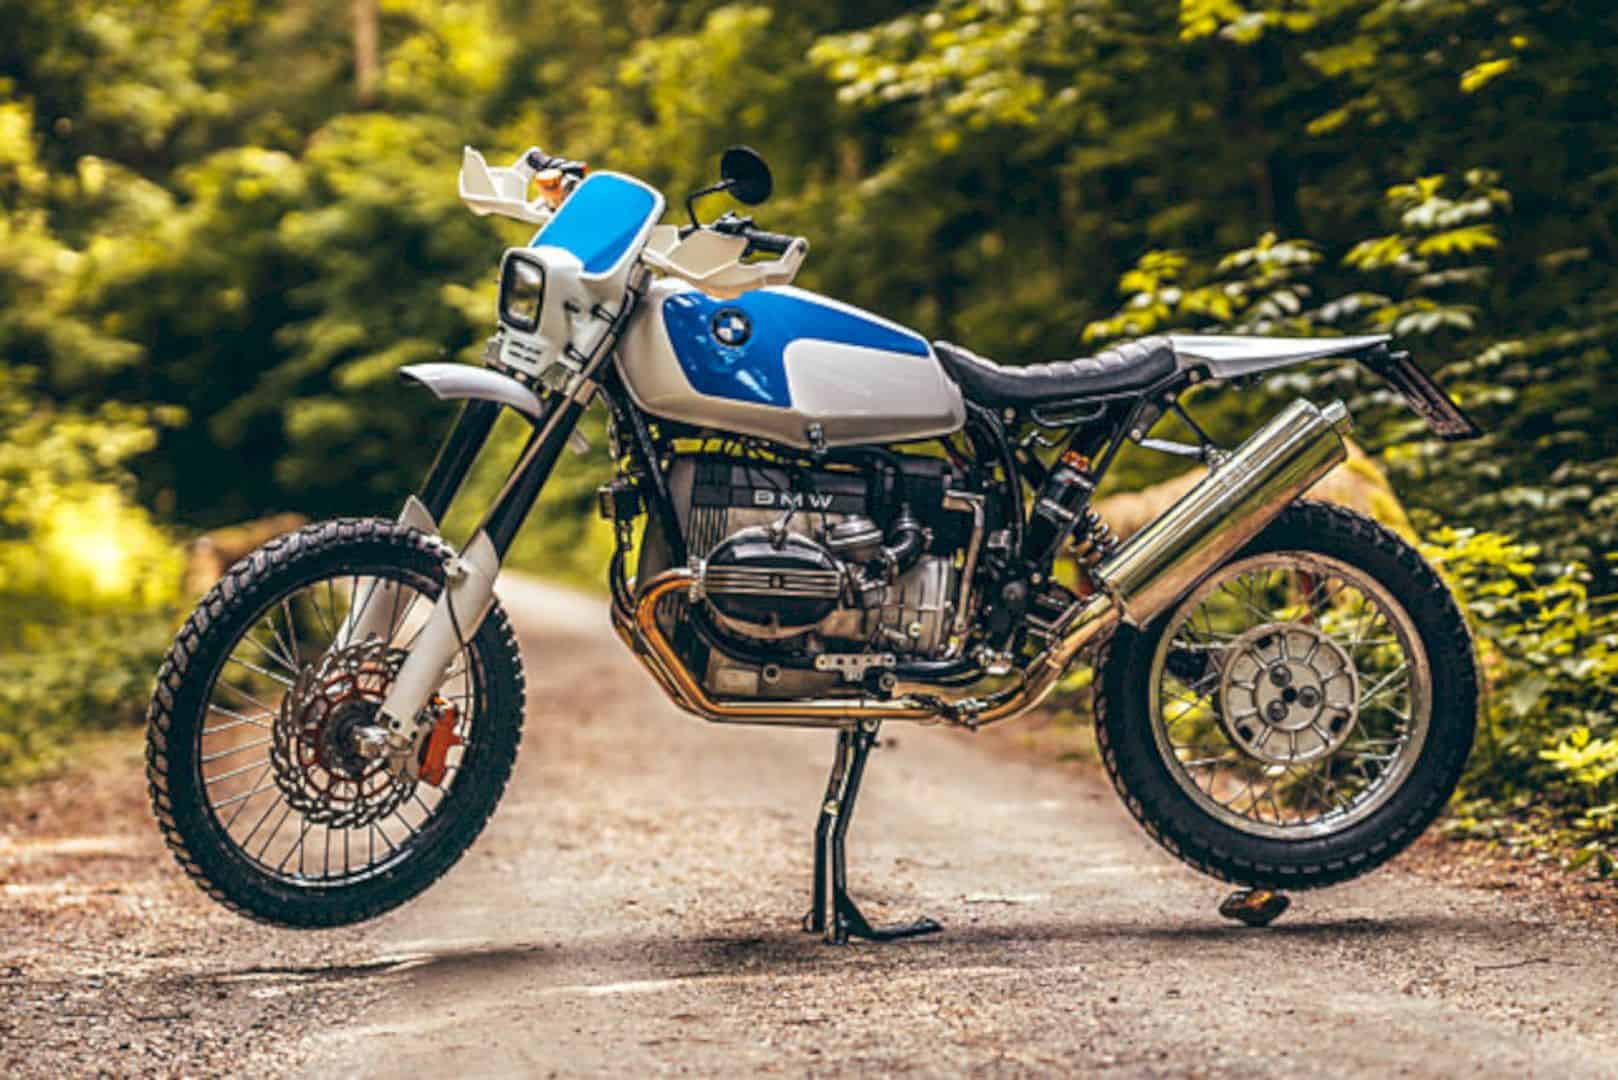 BMW R80GS Enduro by NCT Motorcycles: Conquer Every Terrain